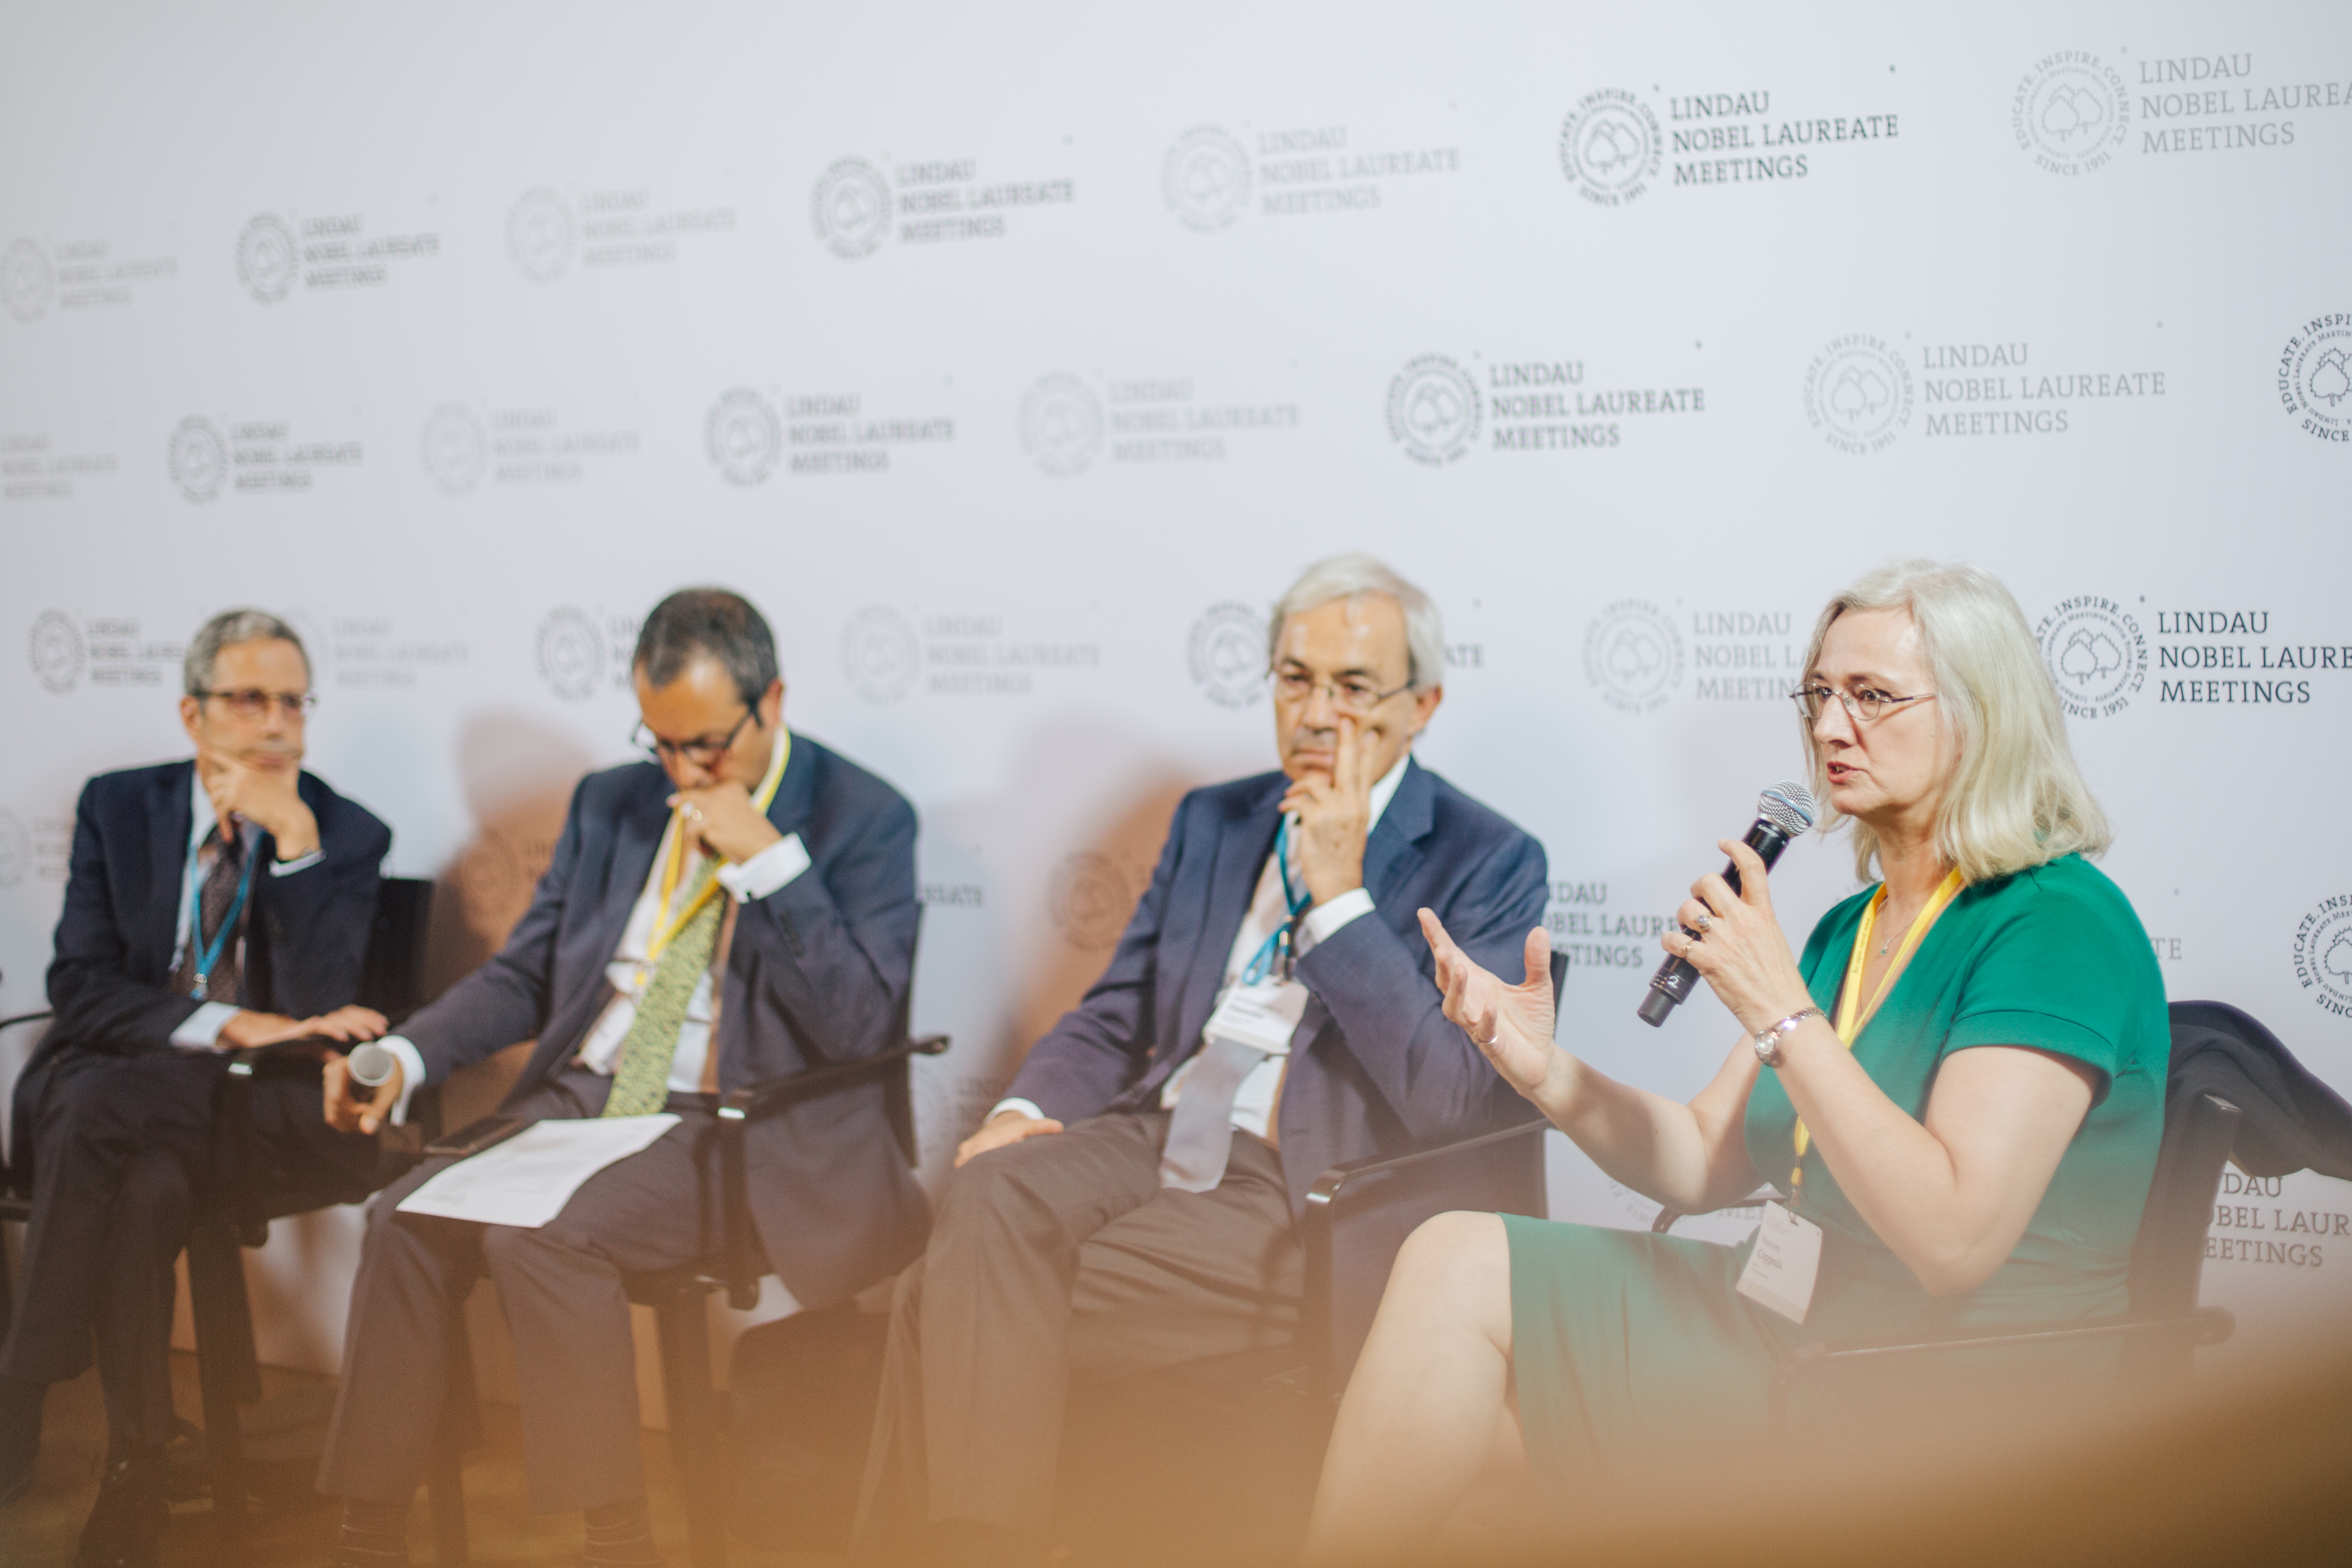 Frances Coppola was speaking on a panel with Nobel Laureates and young economists during a press talk at the 6th Lindau Meeting on Economic Sciences. Picture/Credit: Julia Nimke/Lindau Nobel Laureate Meeting